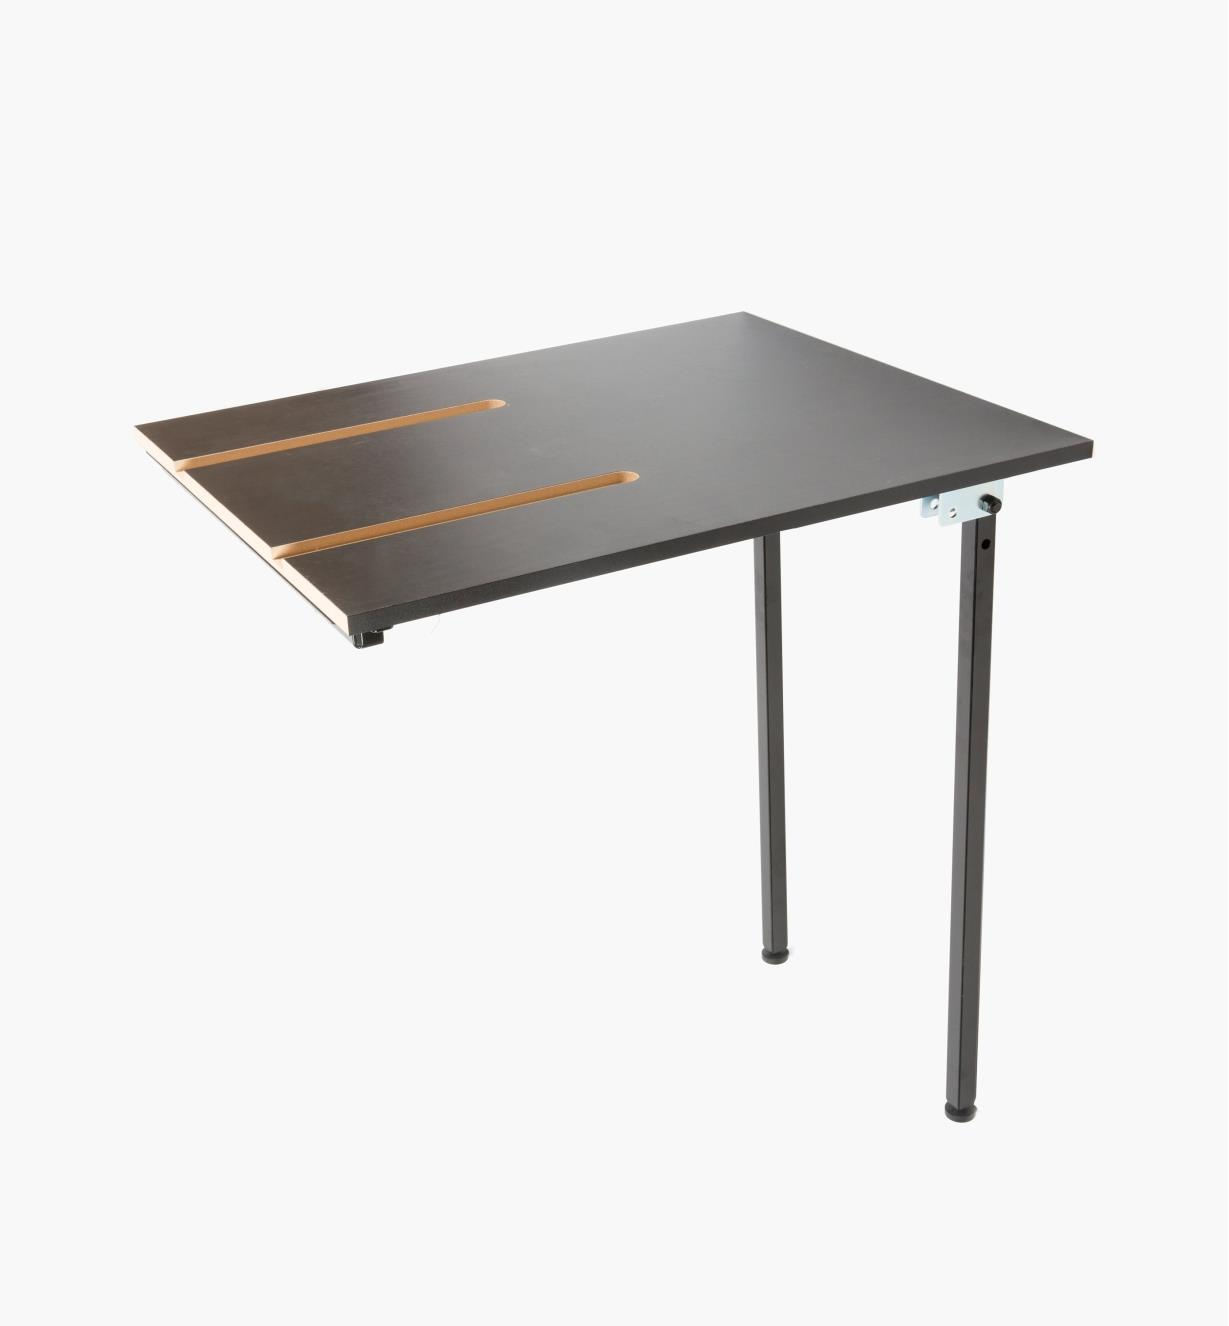 95T0501 - Outfeed Table for Contractor & Professional Saws